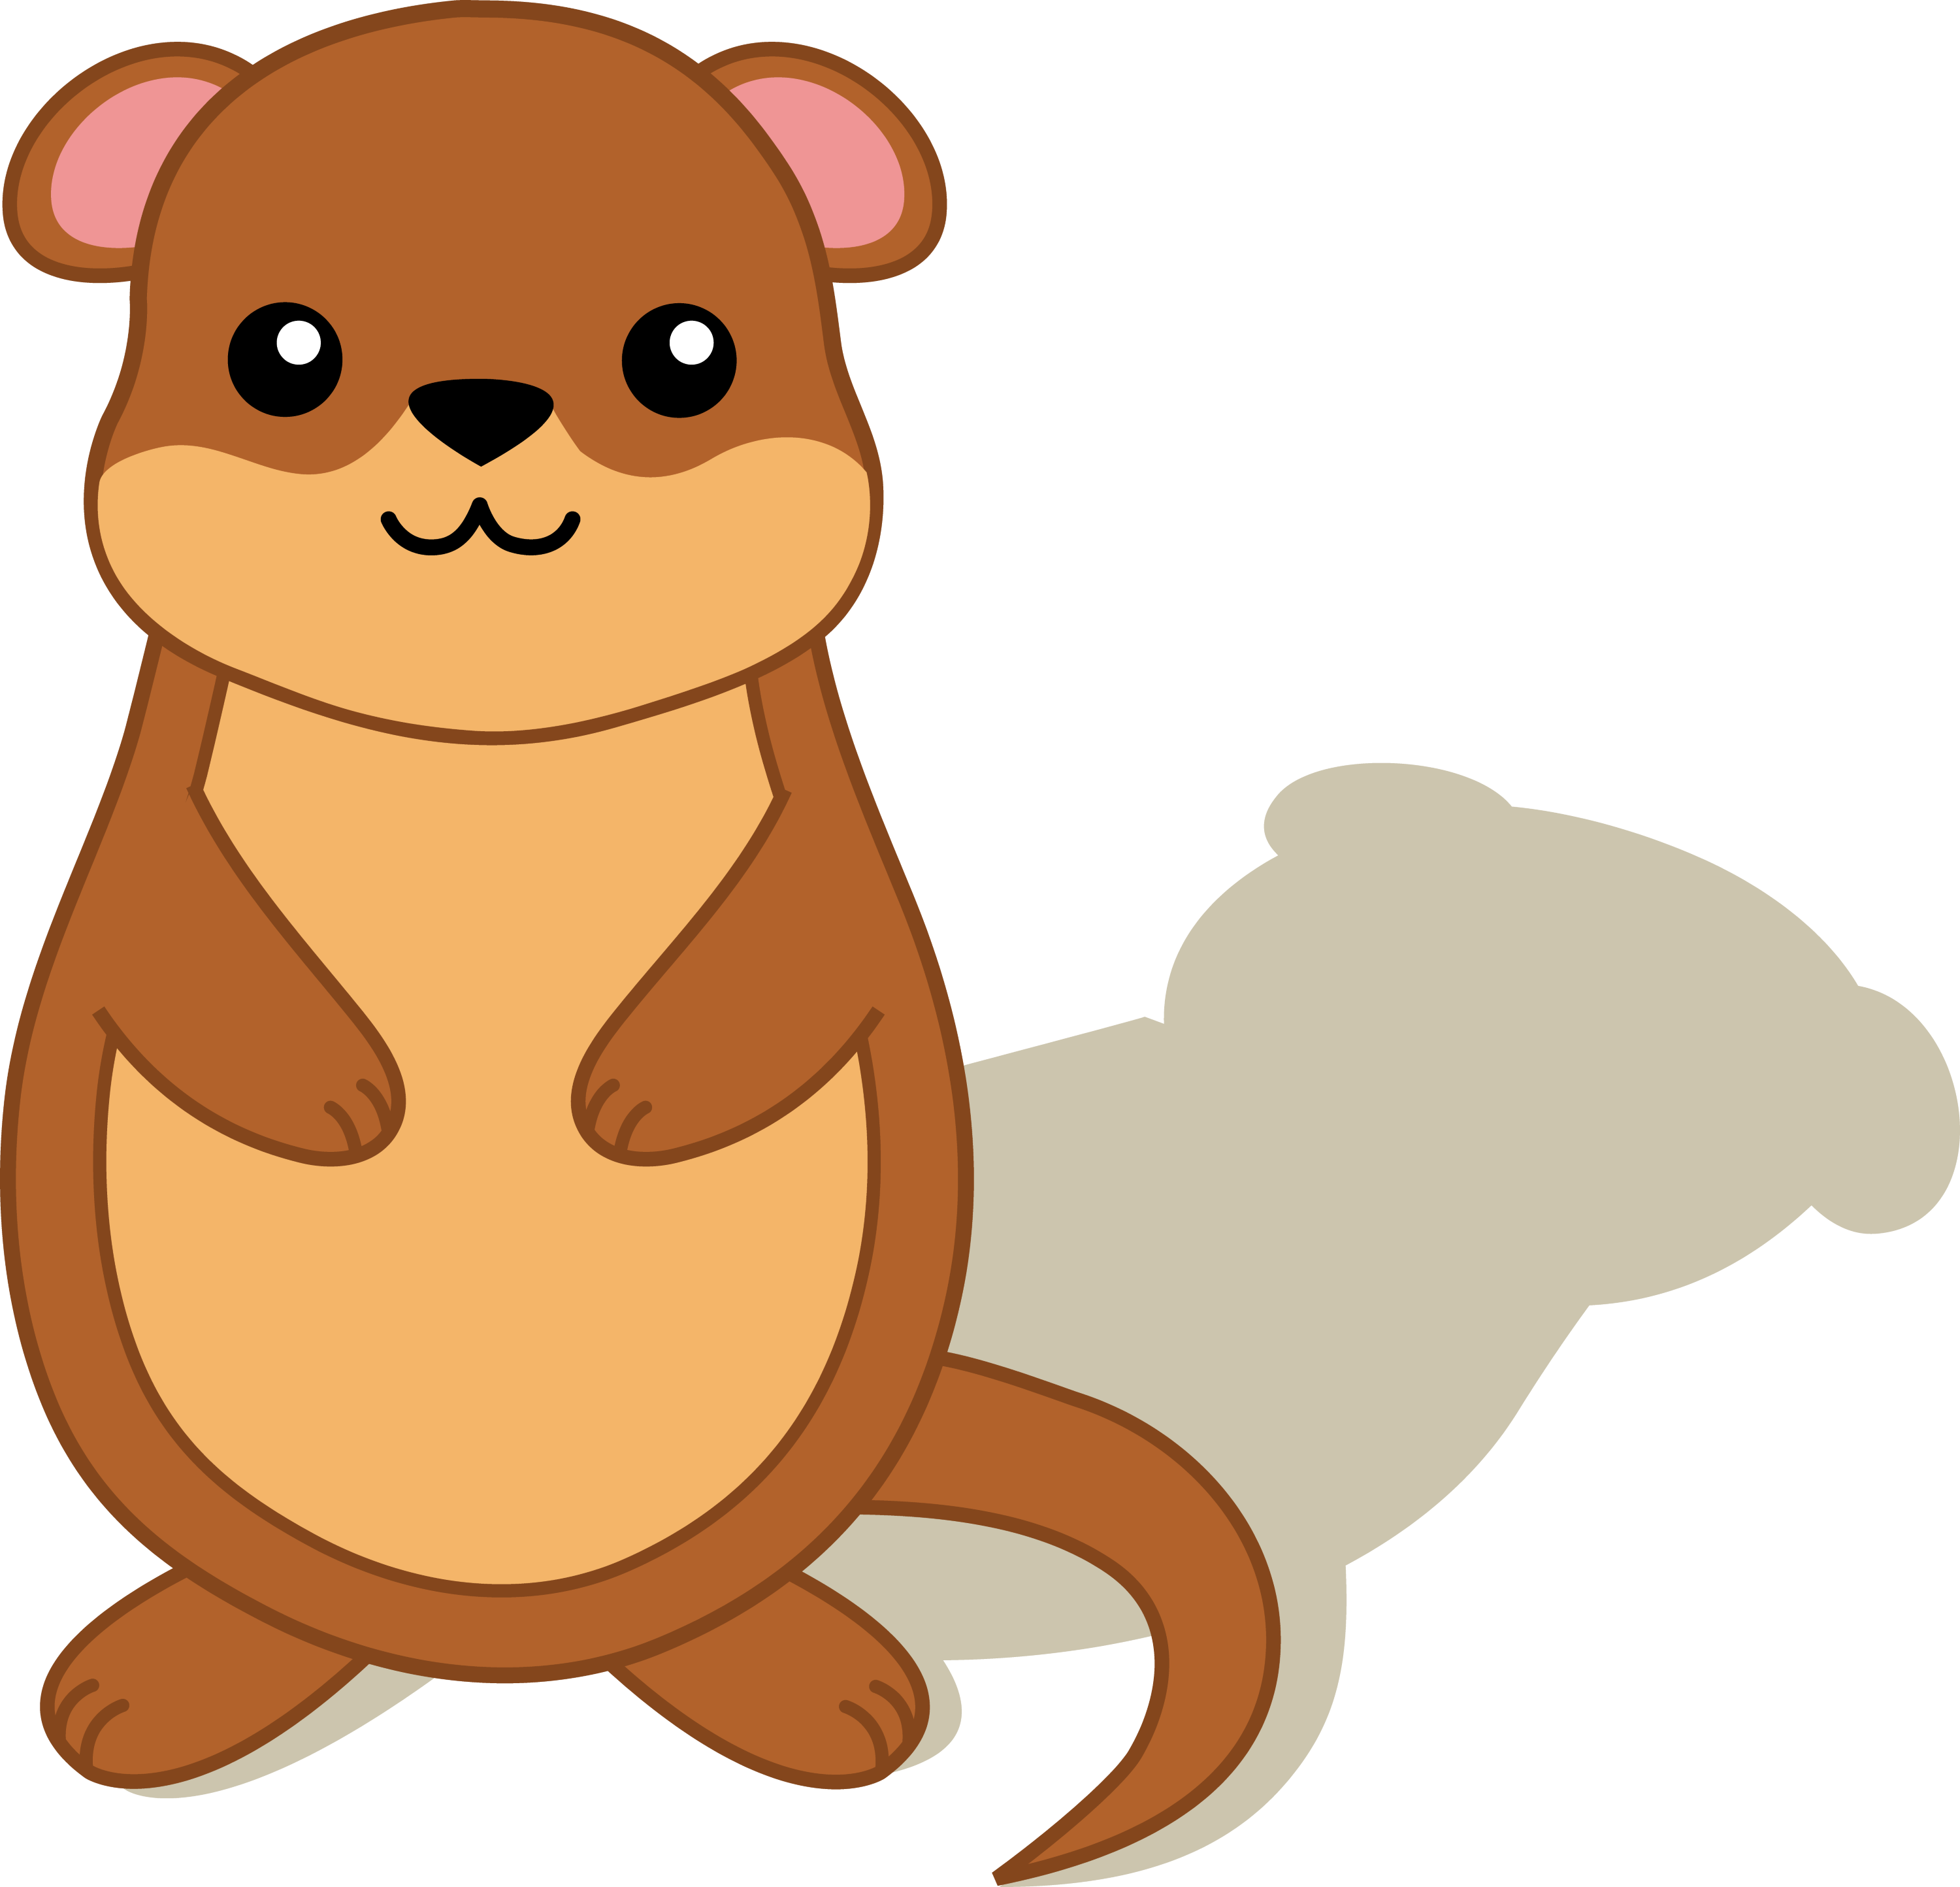 groundhog with shadow free clip art rh sweetclipart com groundhog day clipart groundhog day clipart